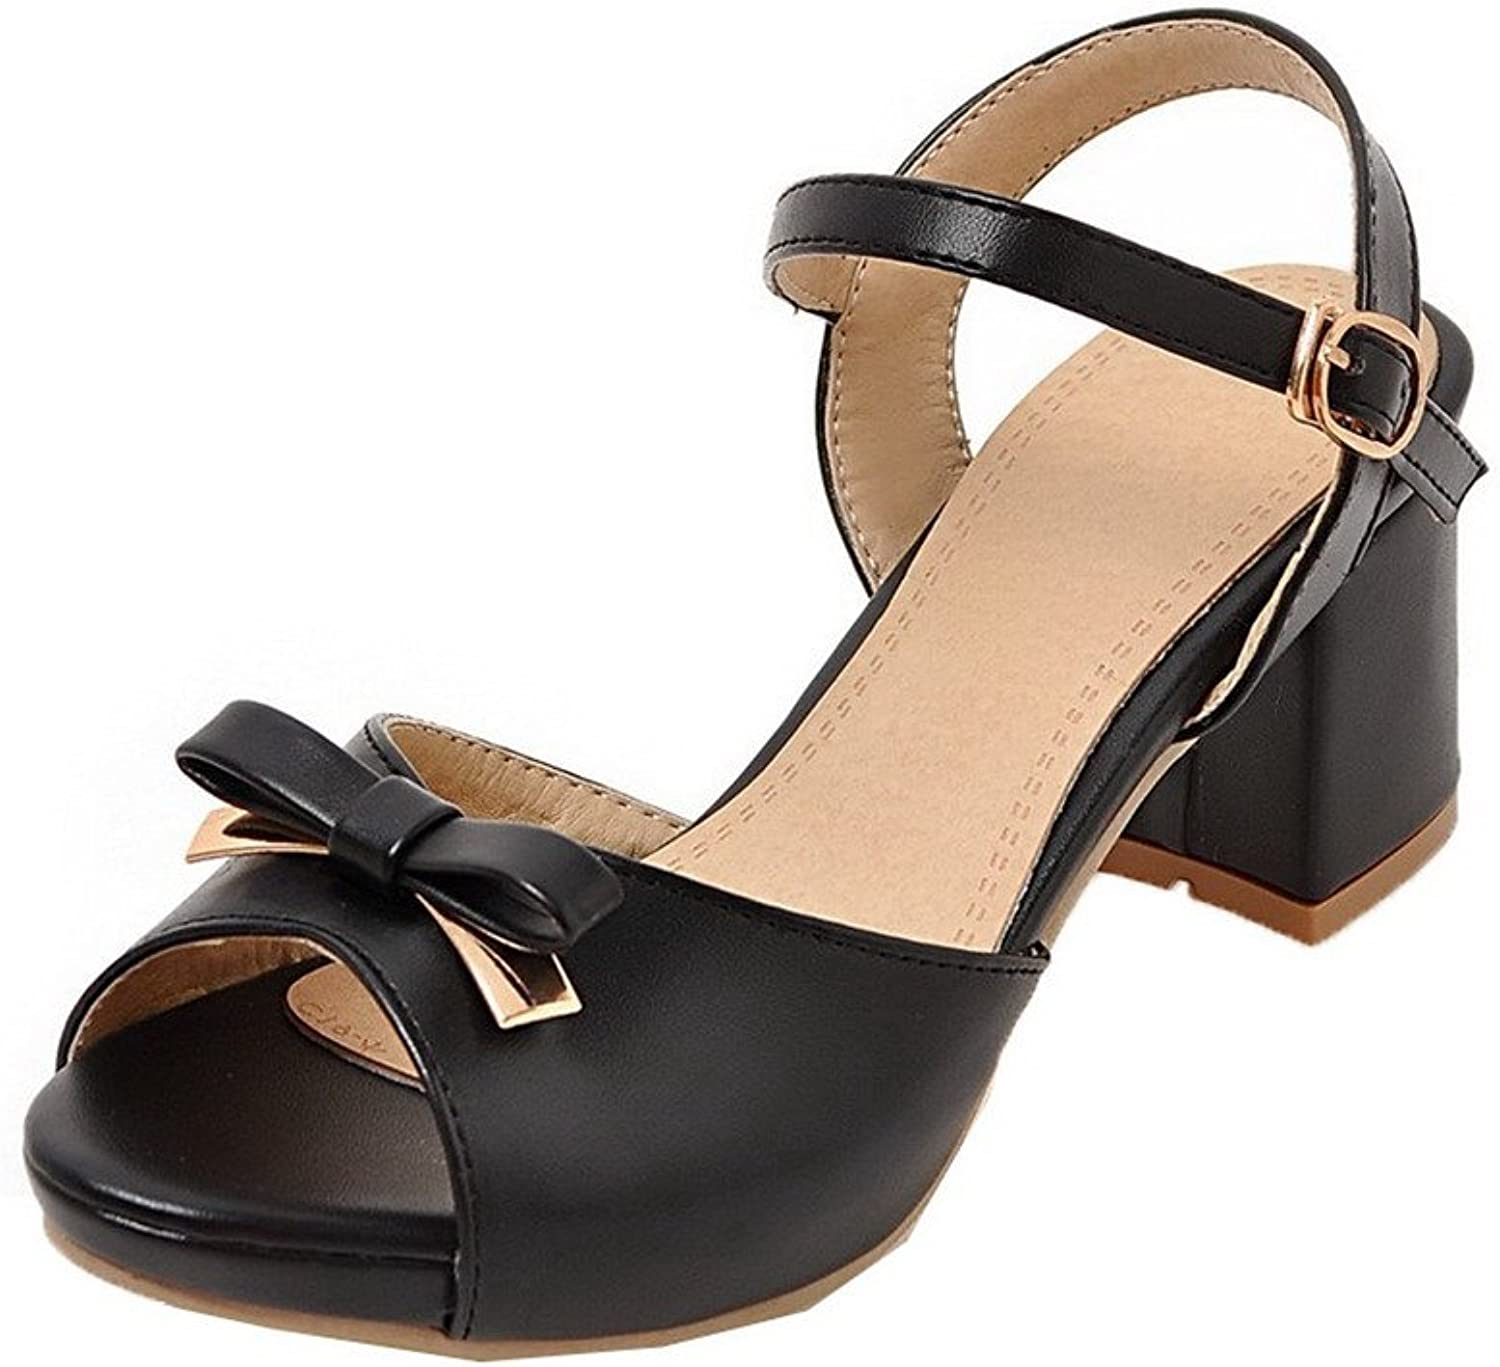 WeiPoot Women's Buckle Pu Open-Toe Kitten-Heels Solid Sandals